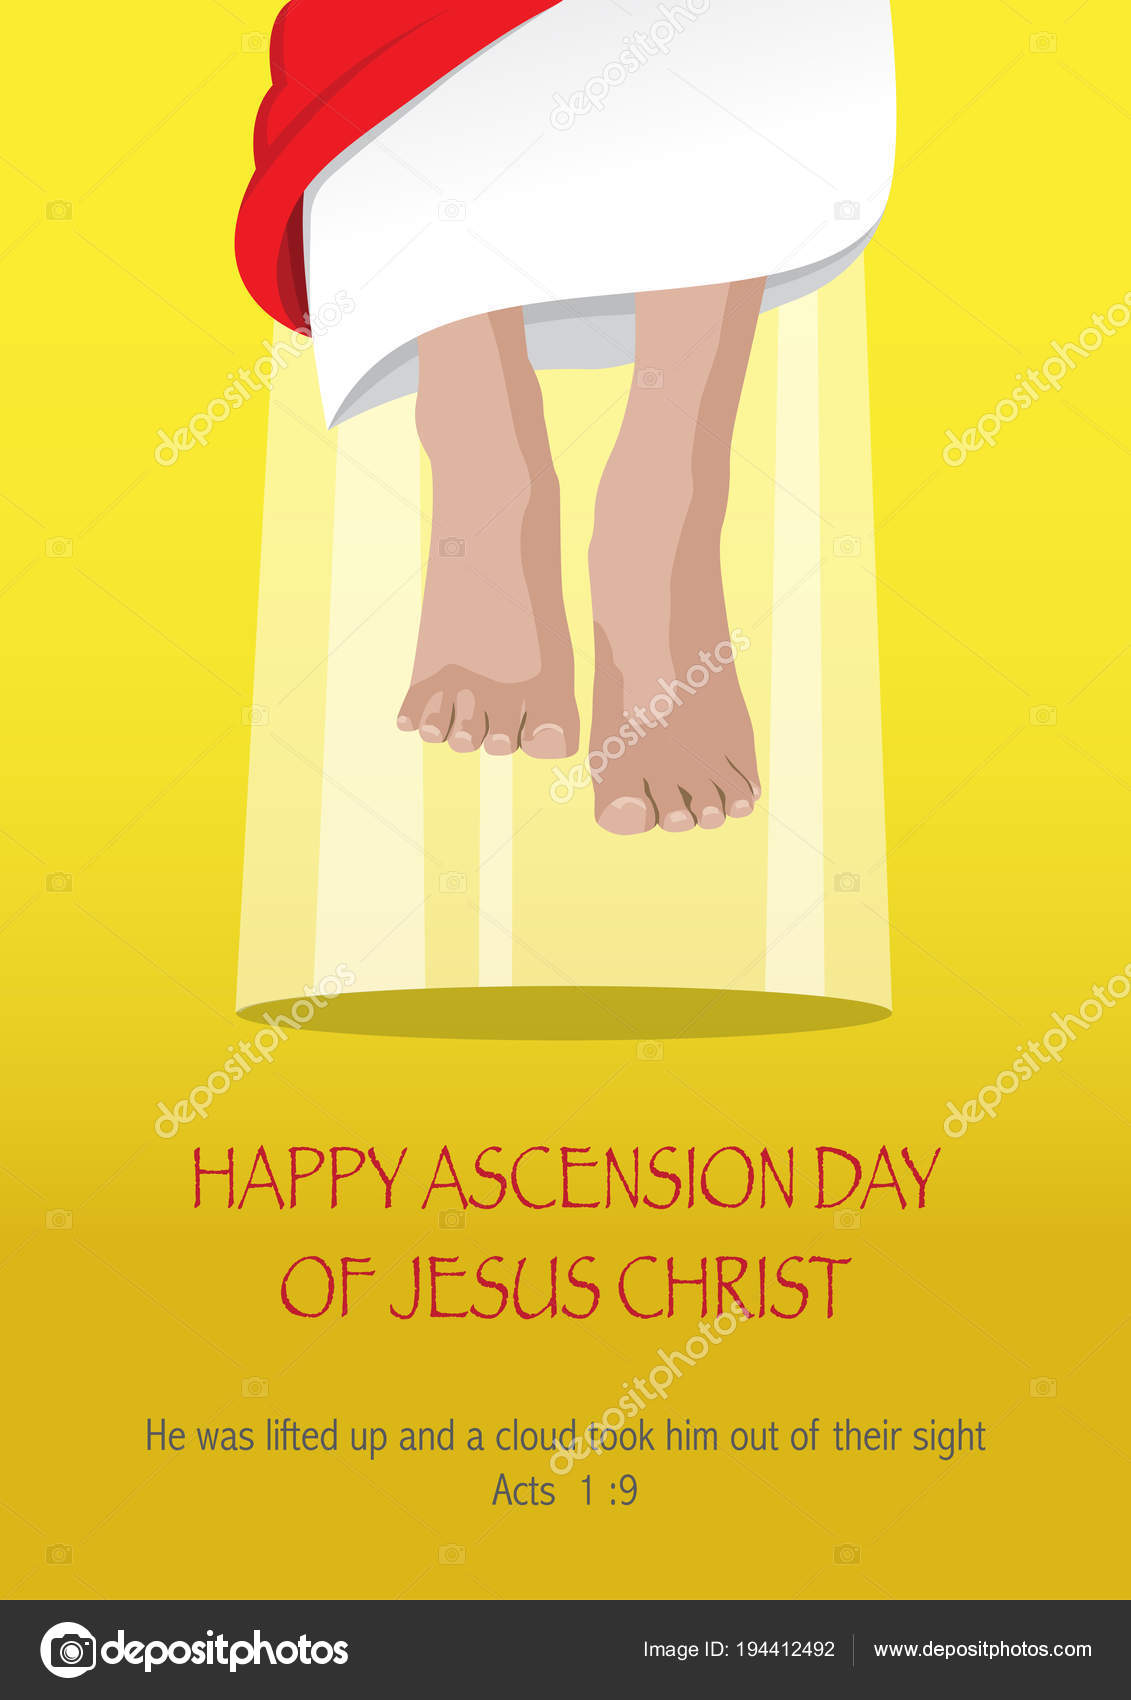 Photos Ascension Day Ascension Day Of Jesus Christ Stock Vector